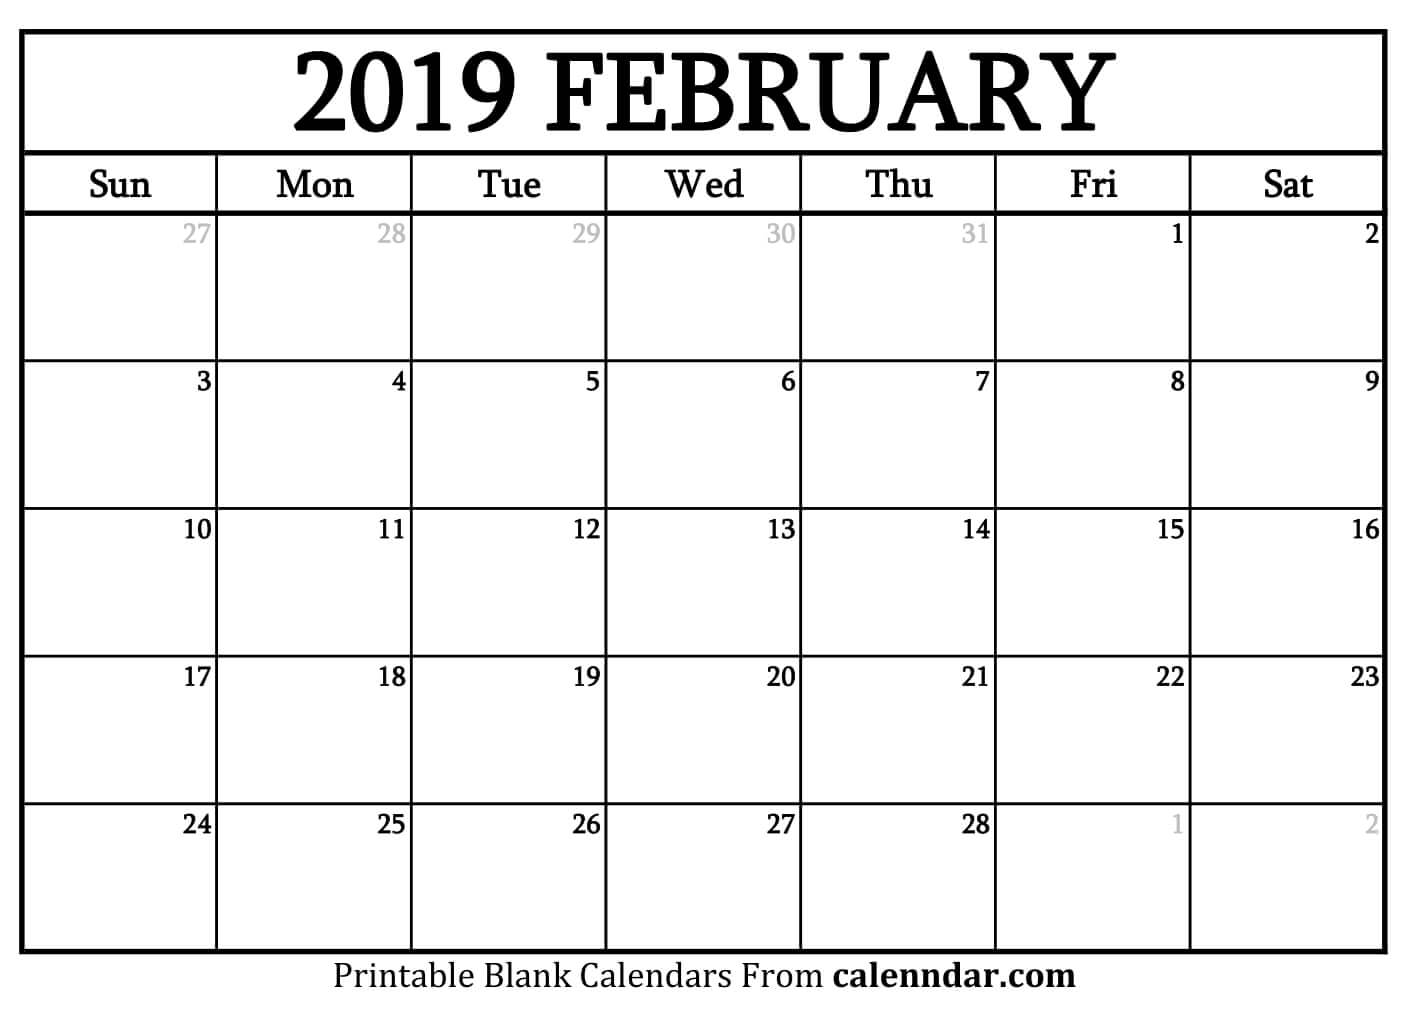 Leap Year Calendar 2019 With Blank February Templates Calenndar Com